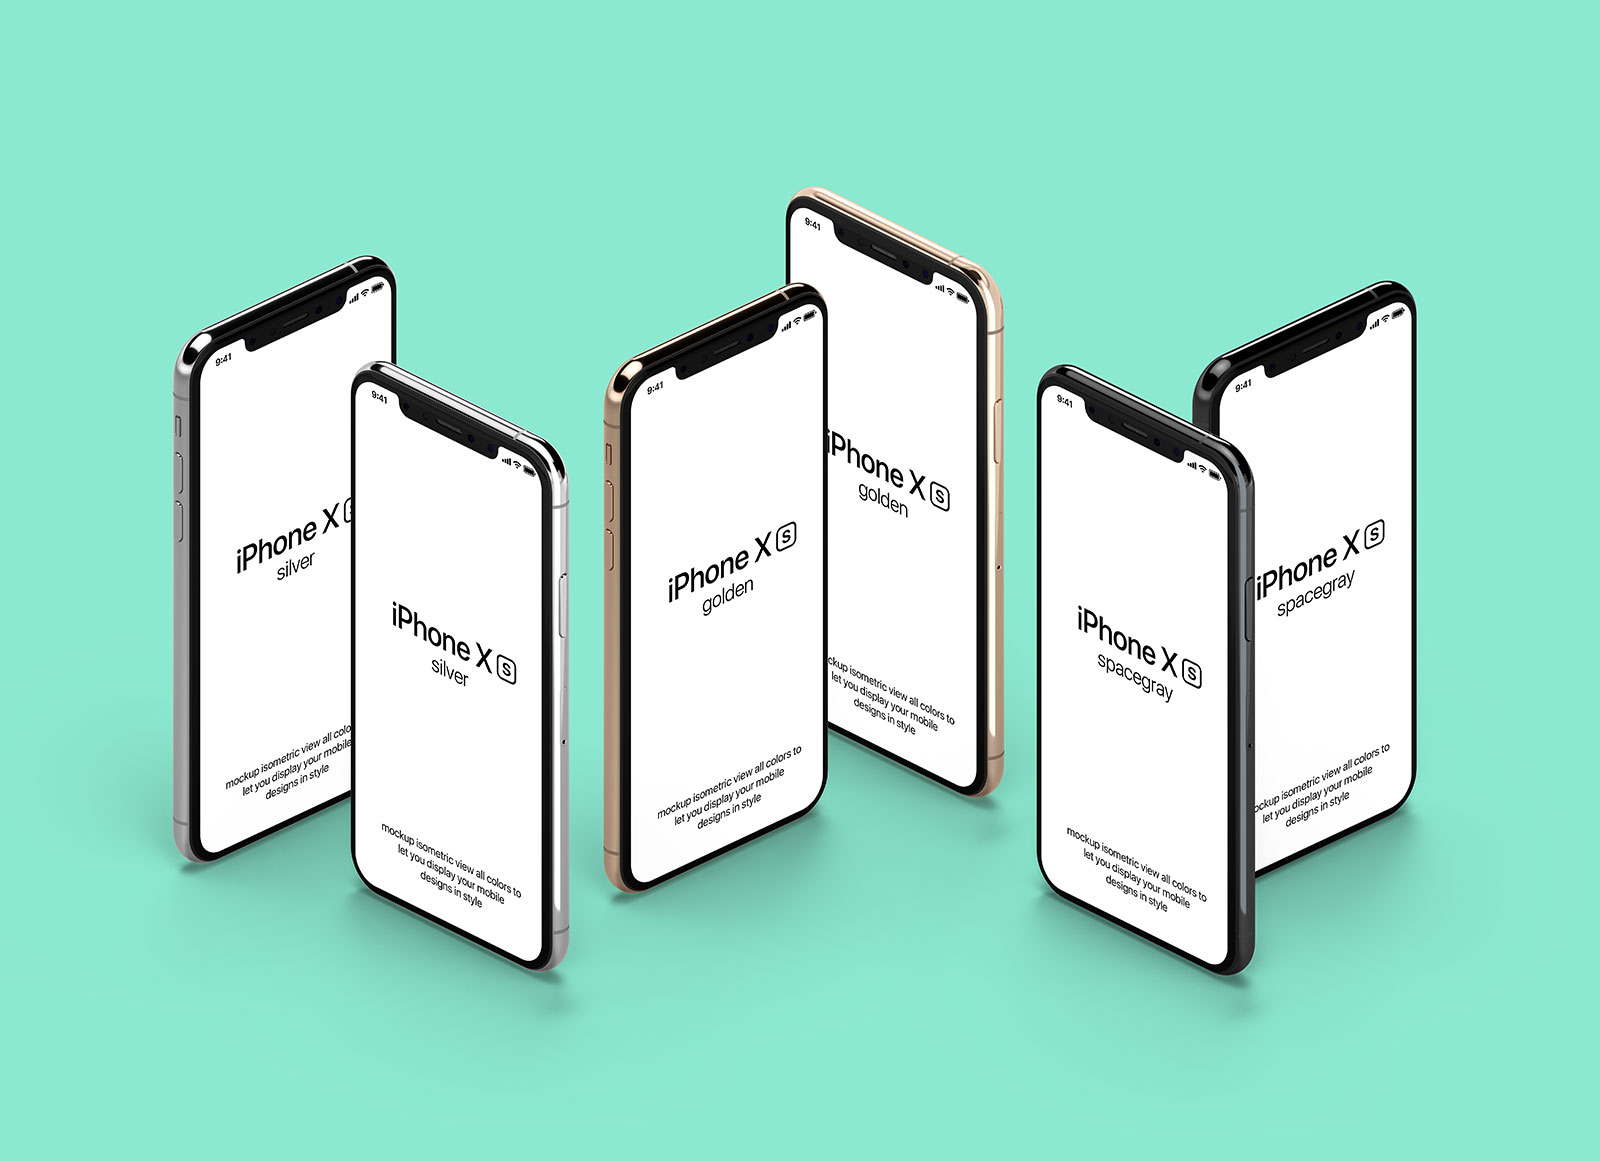 Free-Standing-iPhone-XS-Isometric-Mockup-PSD